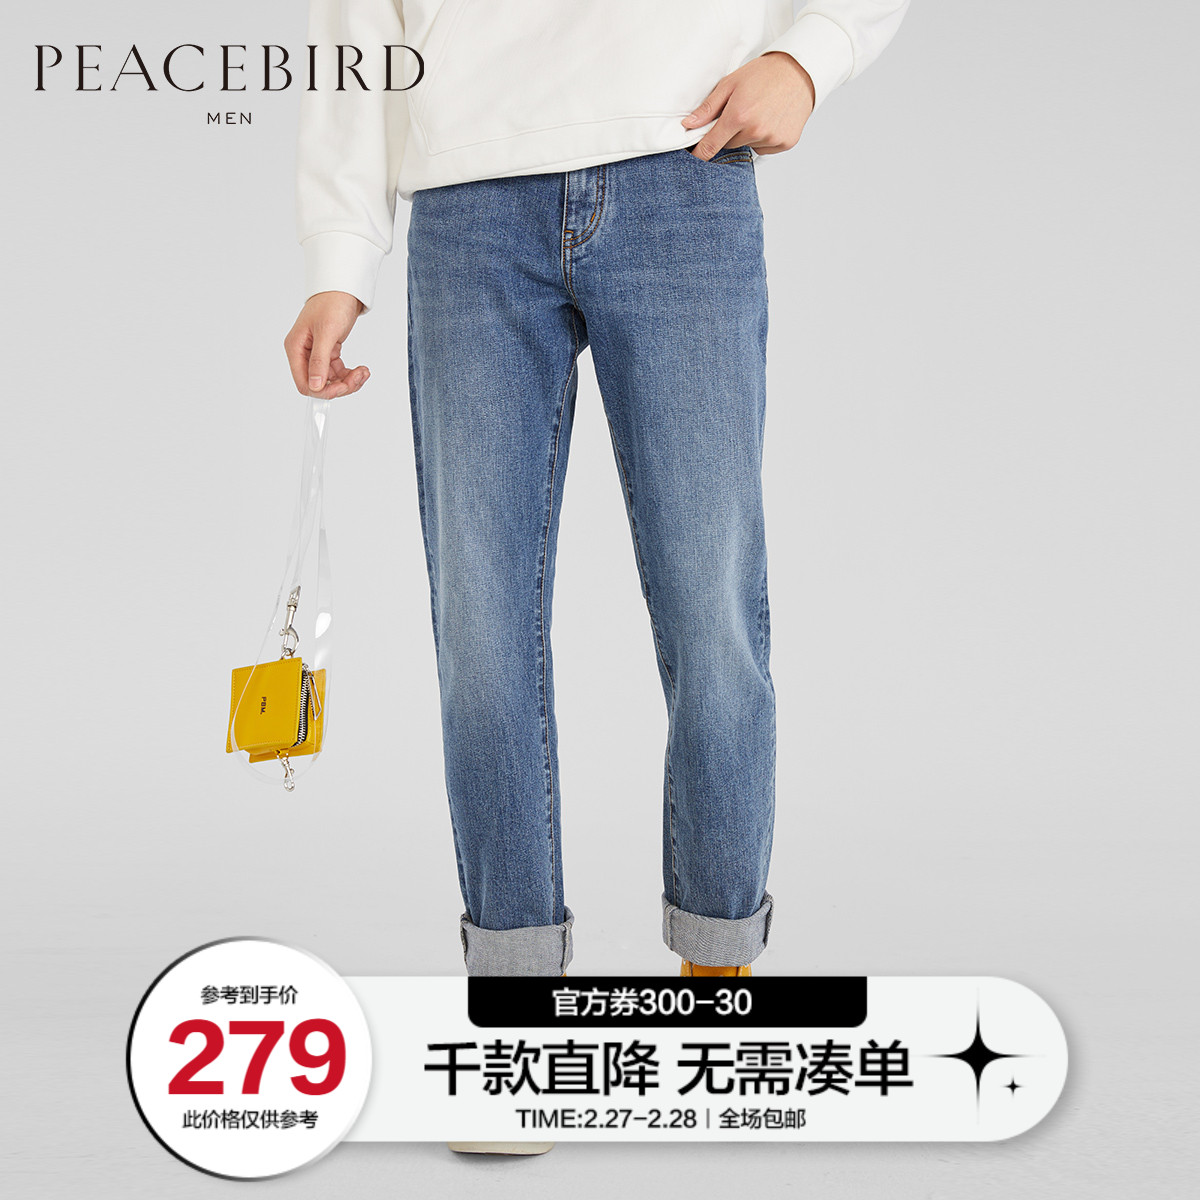 Taiping bird men's flagship store spring and summer new fashion straight jeans Korean Trend men's casual pants